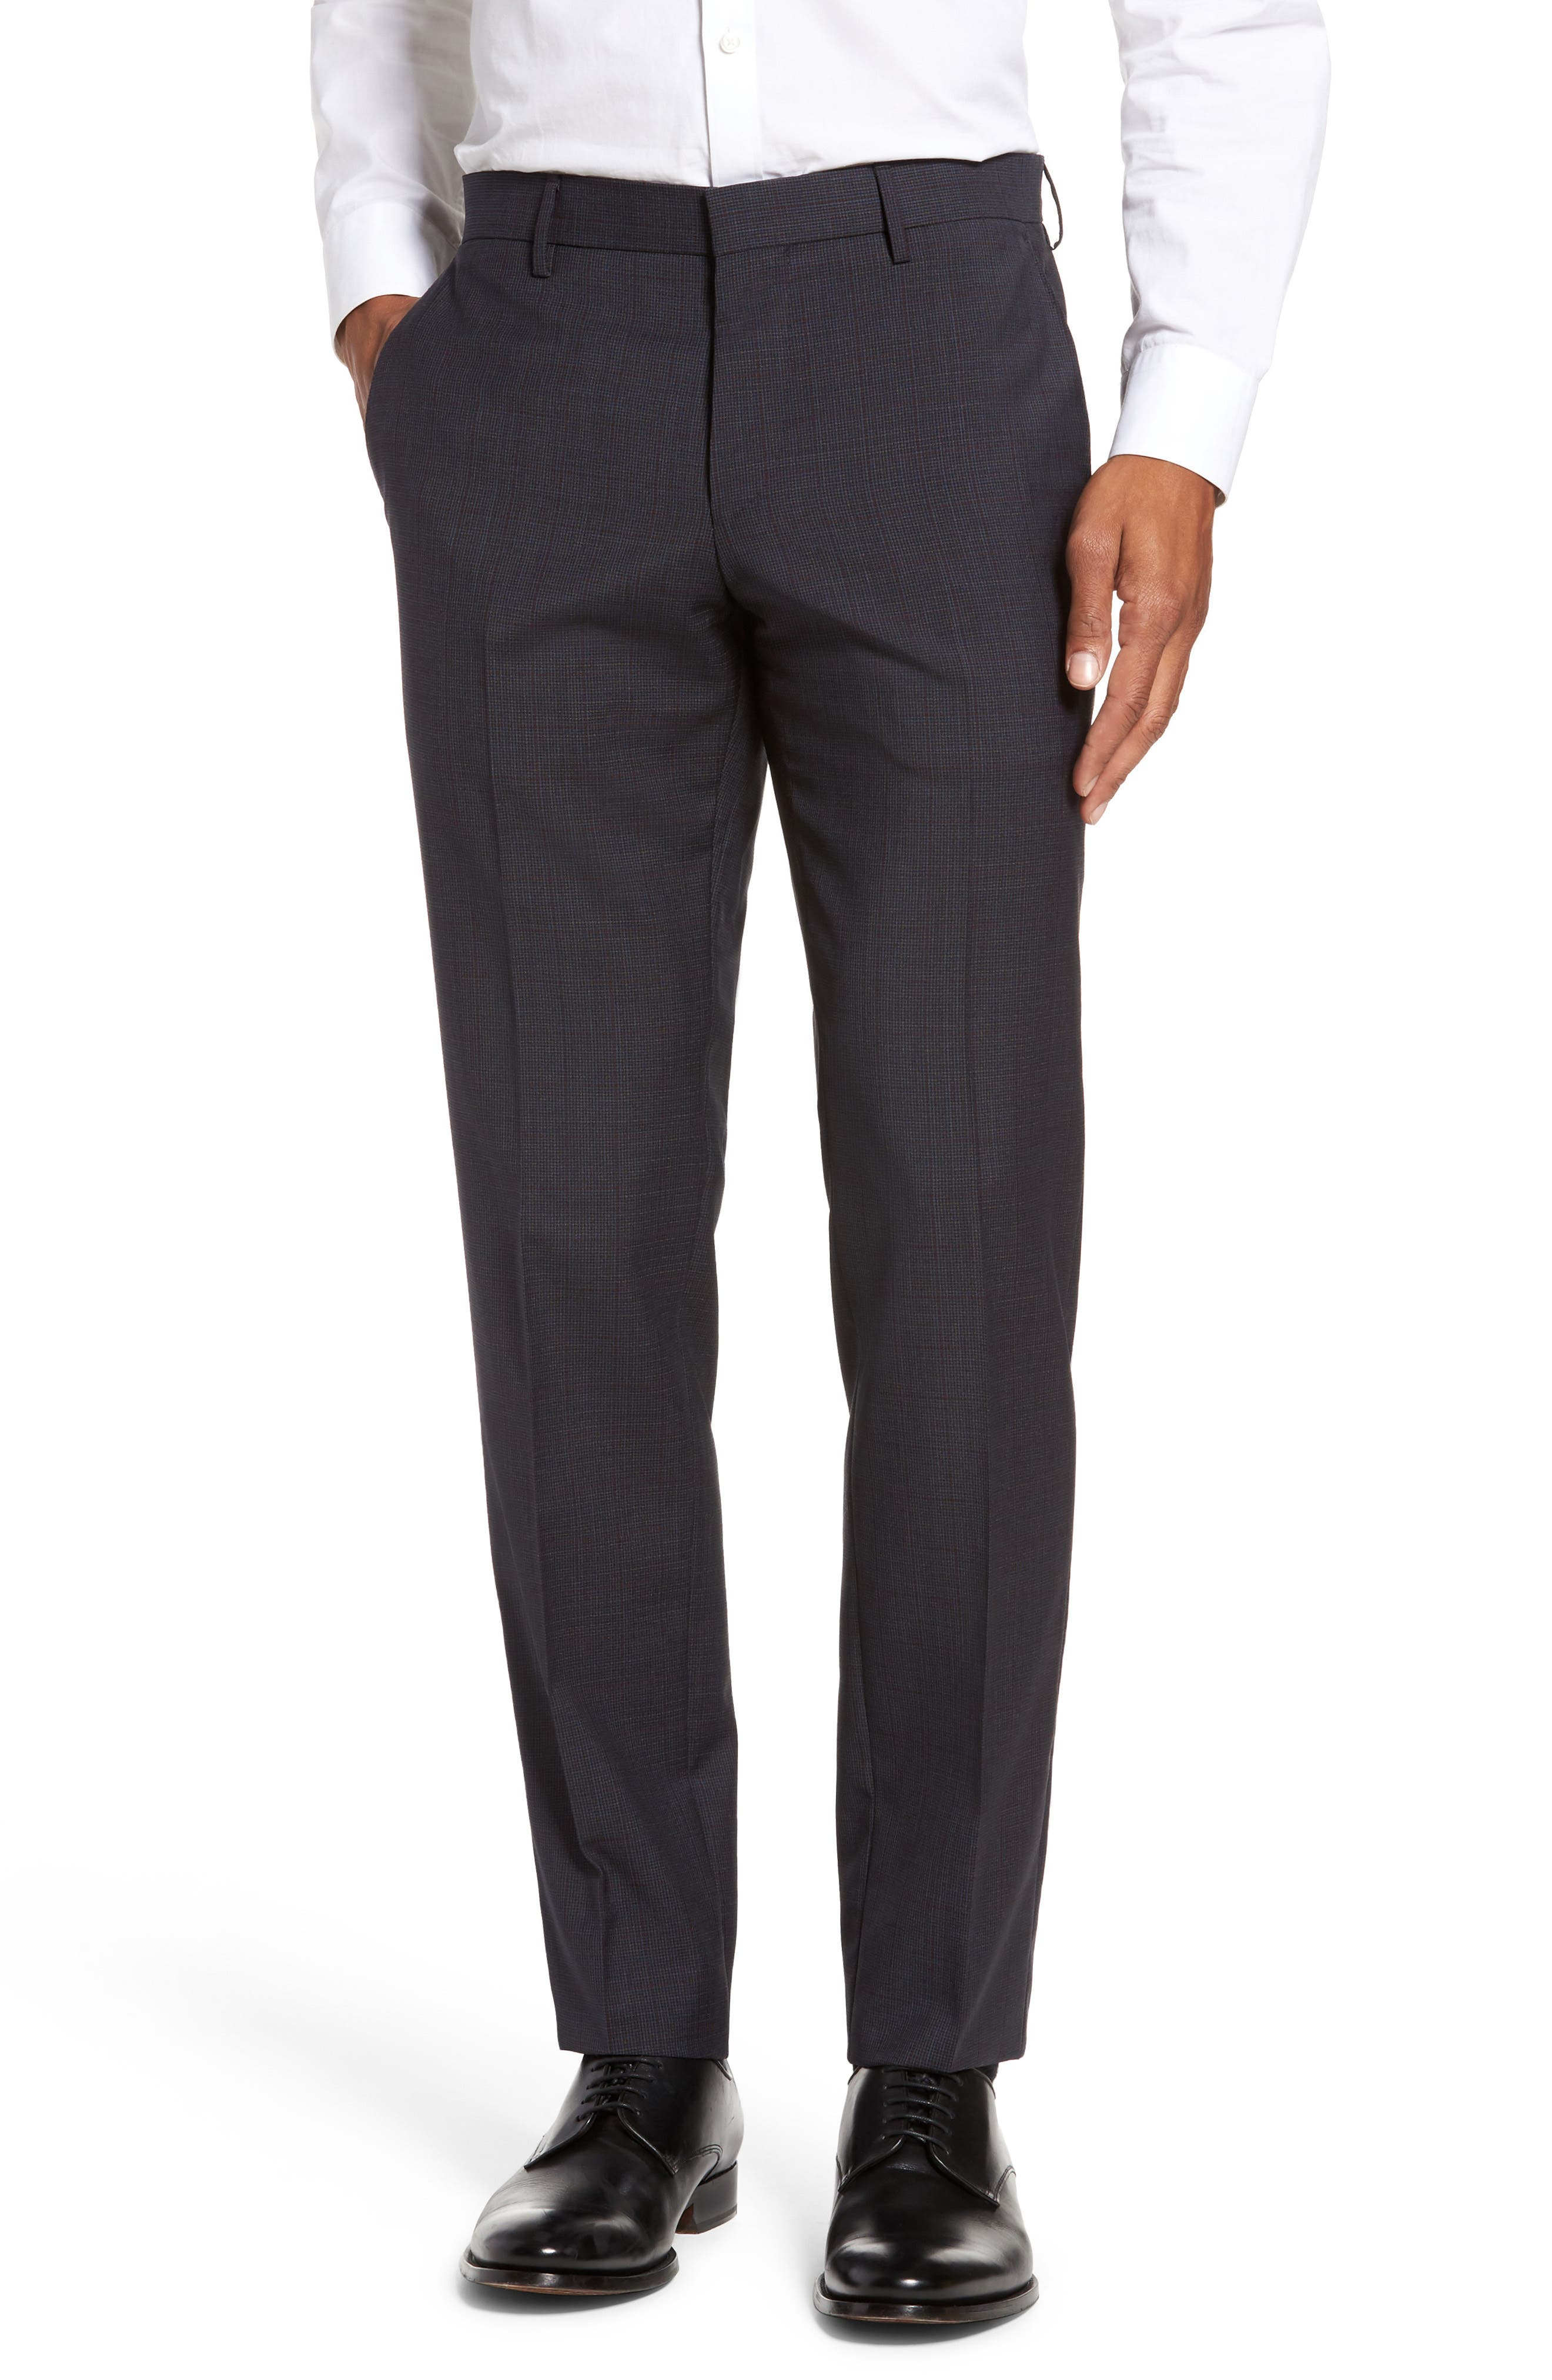 Benso Flat Front Houndstooth Wool Trousers,                         Main,                         color, 410